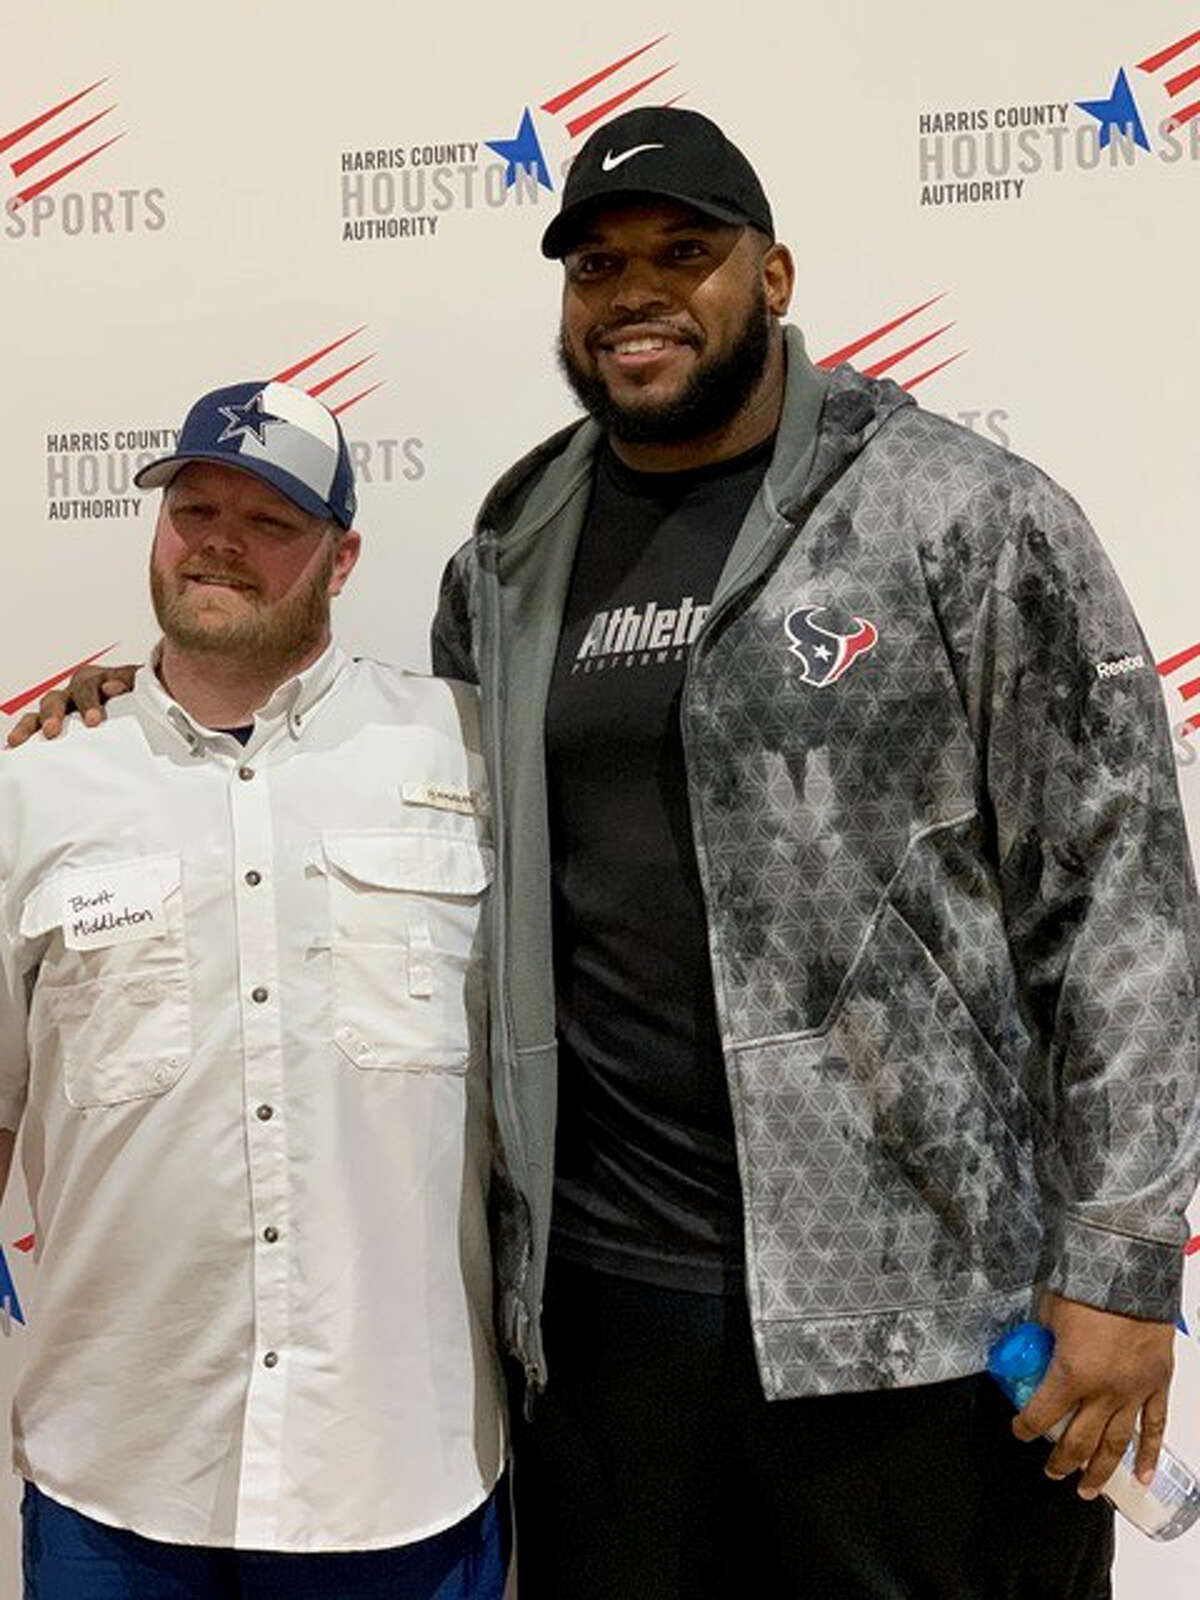 As they chatted, Brett Middleton (left), who lost his arm in a power line accident, and Anthony Hill discussed simple things people do each day and take for granted.